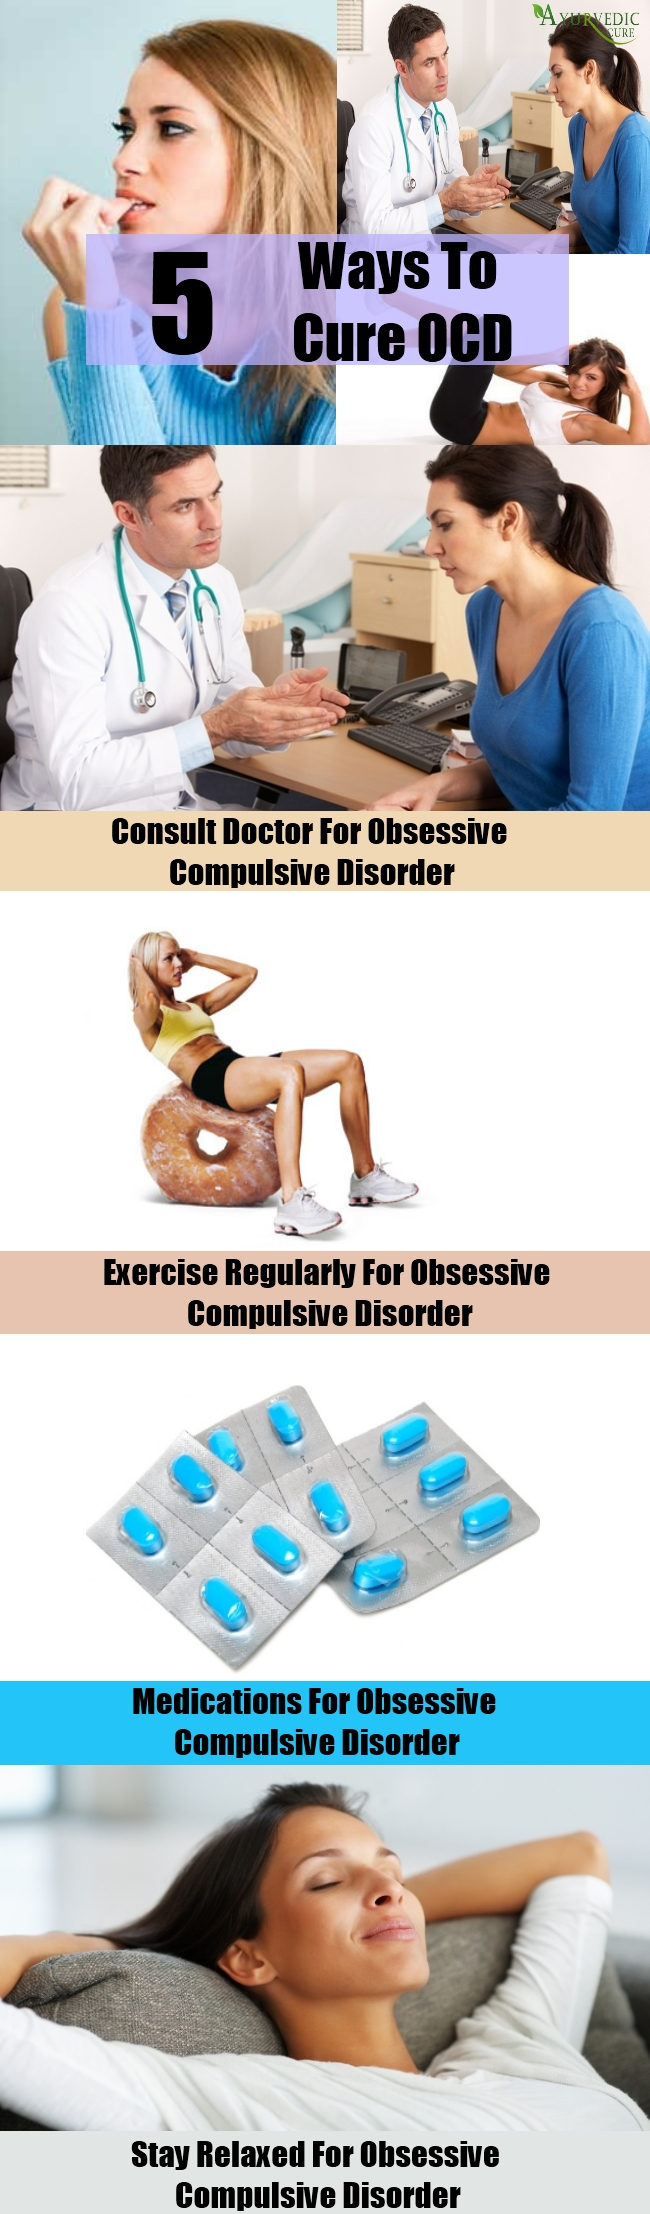 5 Tips On How To Cure OCD